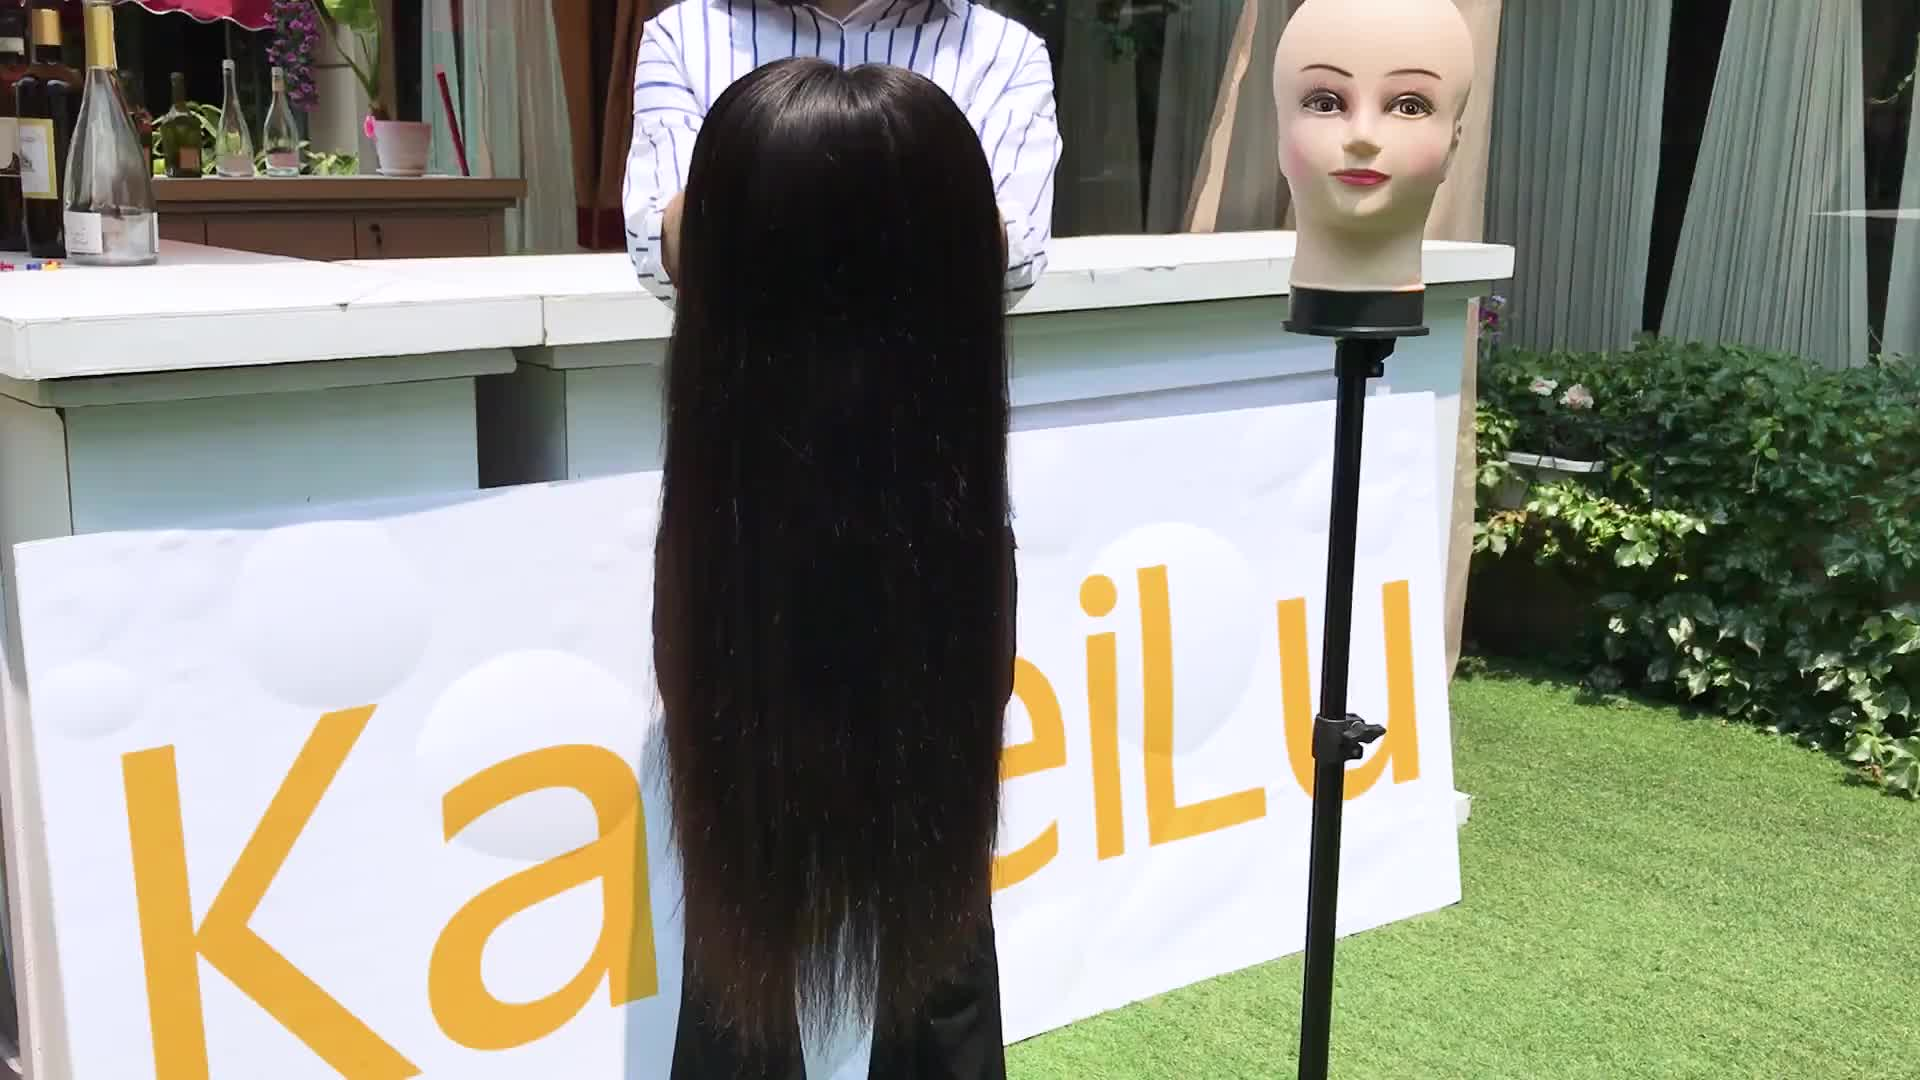 Alibaba hot sale lavender lace front wig, 70s wig, all black middle part lace front wig